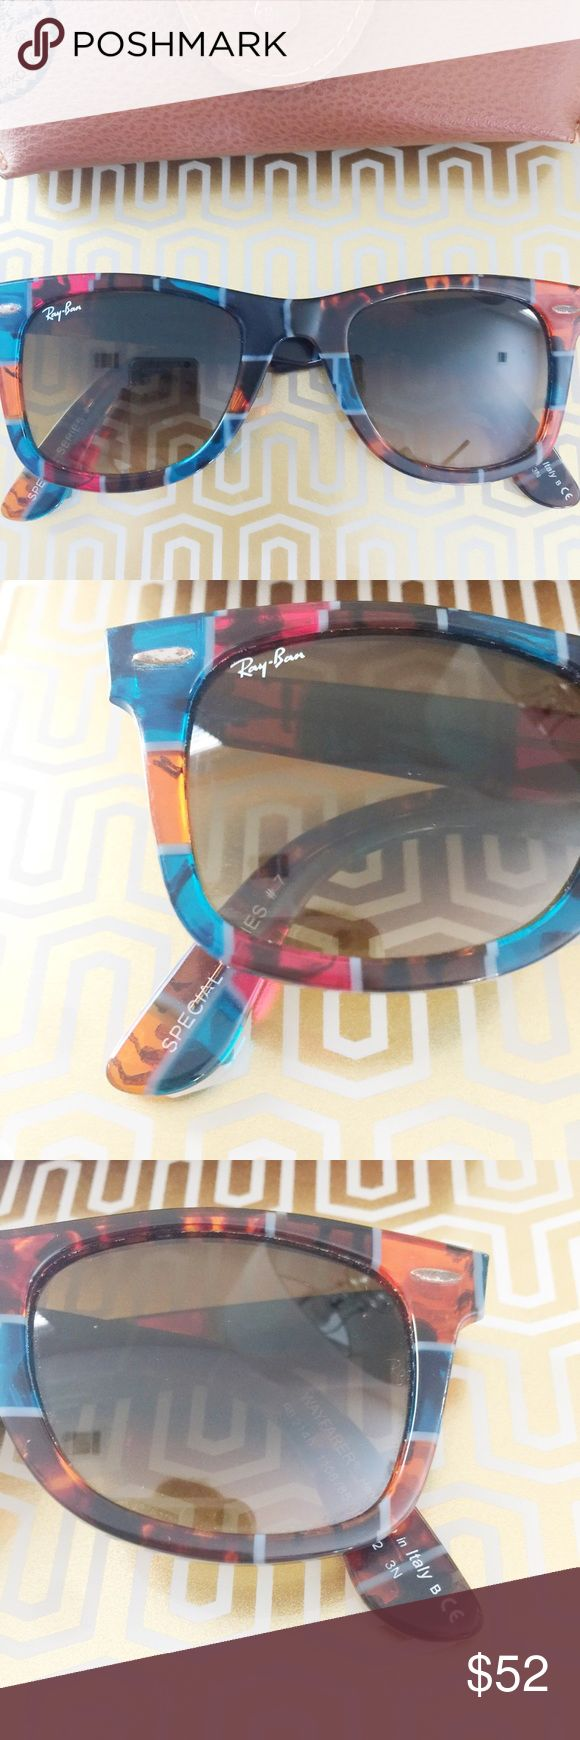 Ray-ban Printed Wayfarers Super fun and classic Ray-Ban Wayfarers perfect for a funky, chic look! Worn a ton while living in Hawaii with some light/minor scratches on the lenses as well as some miscoloration on the corner pierces - priced accordingly! Reasonable offers always accepted. Bundle more to save more ❤️✨ Ray-Ban Accessories Sunglasses